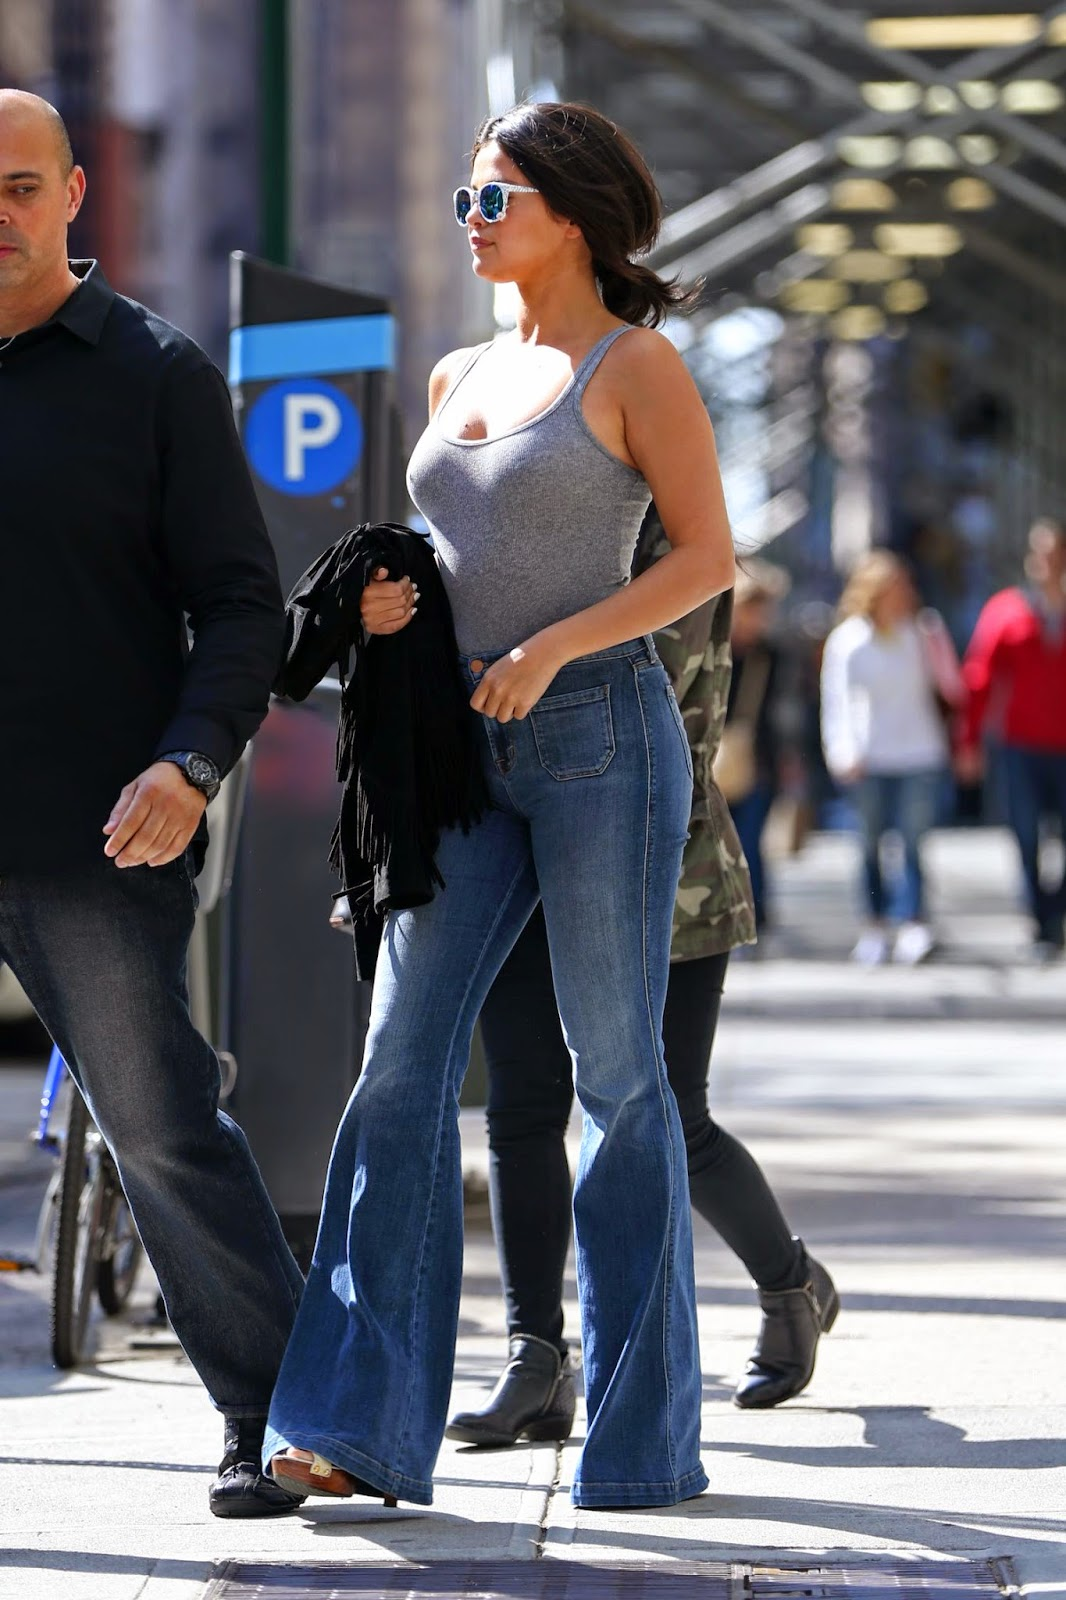 Selena Gomez bares cleavage in a tank top out and about in NYC